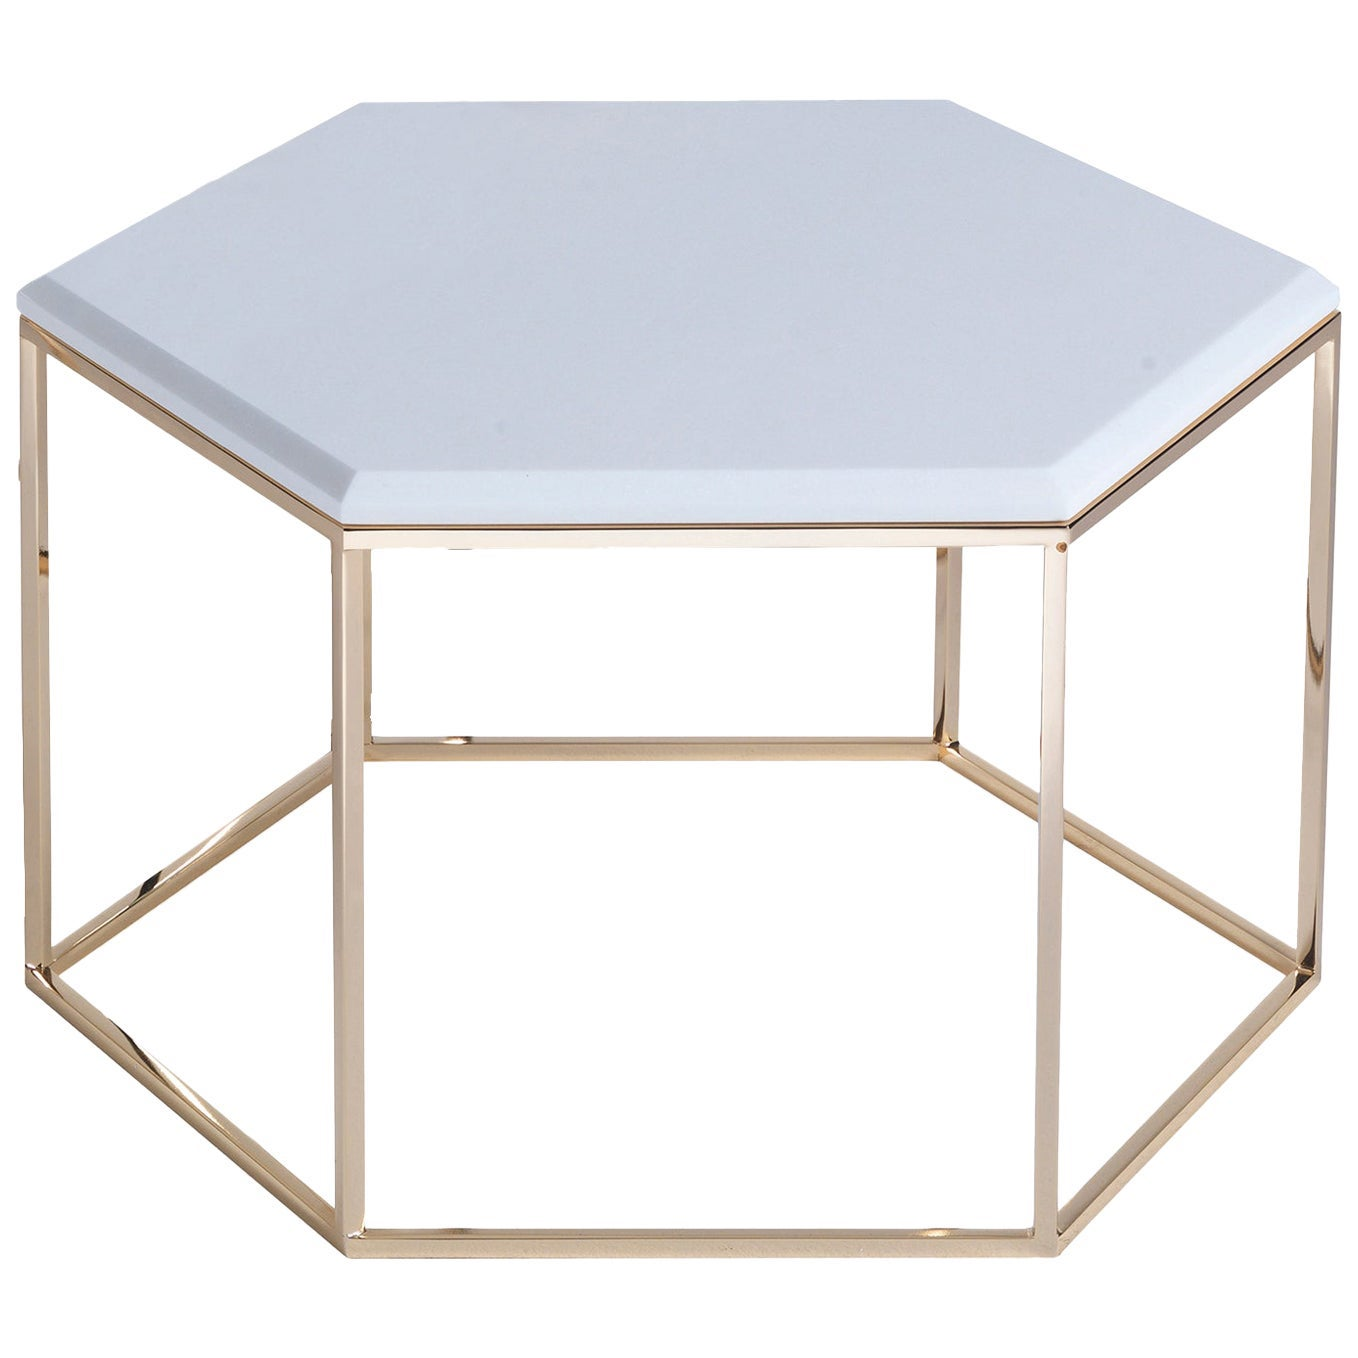 T178/S Hexagonal Small Coffee Table with Gold Base and Marble Top by Zanaboni